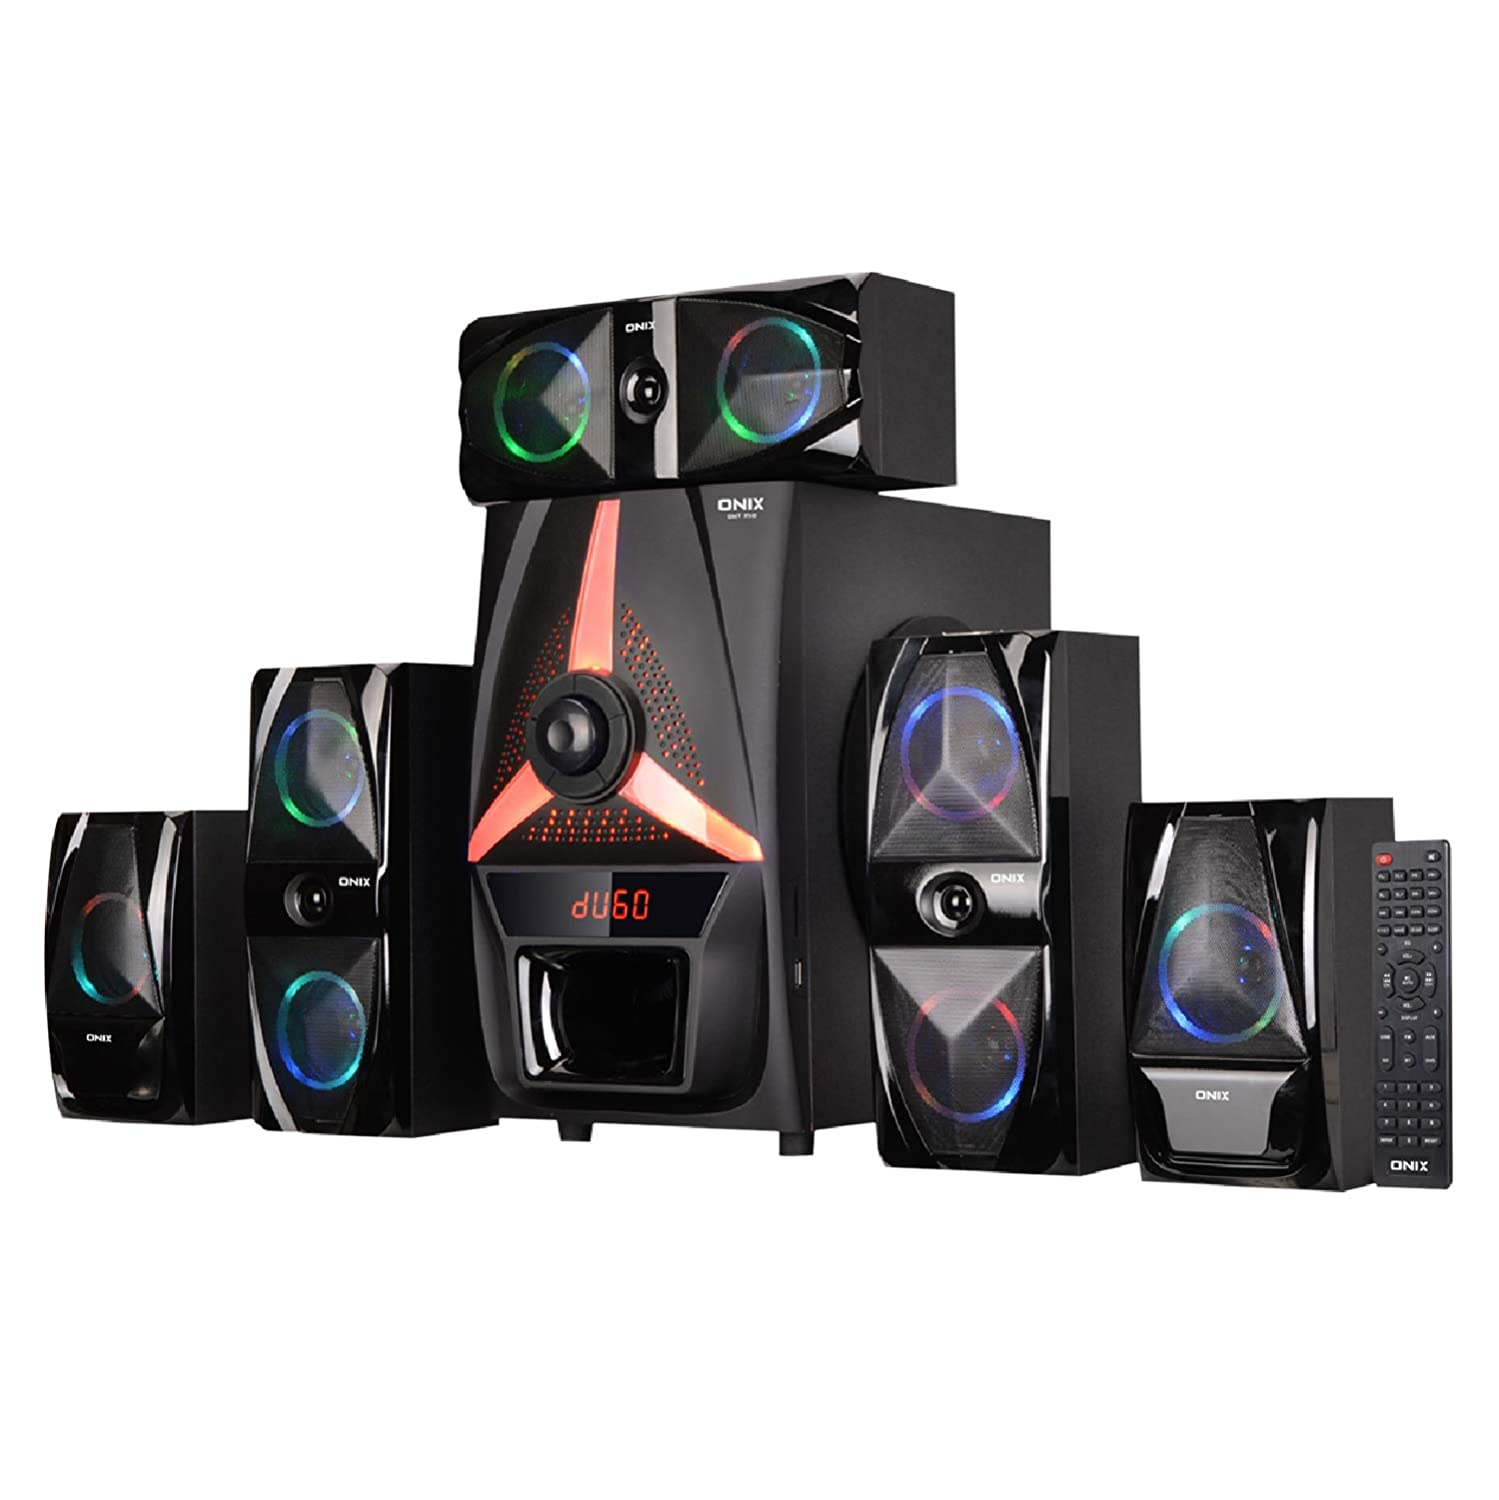 ONIX 5.1 OHT-350 home theater